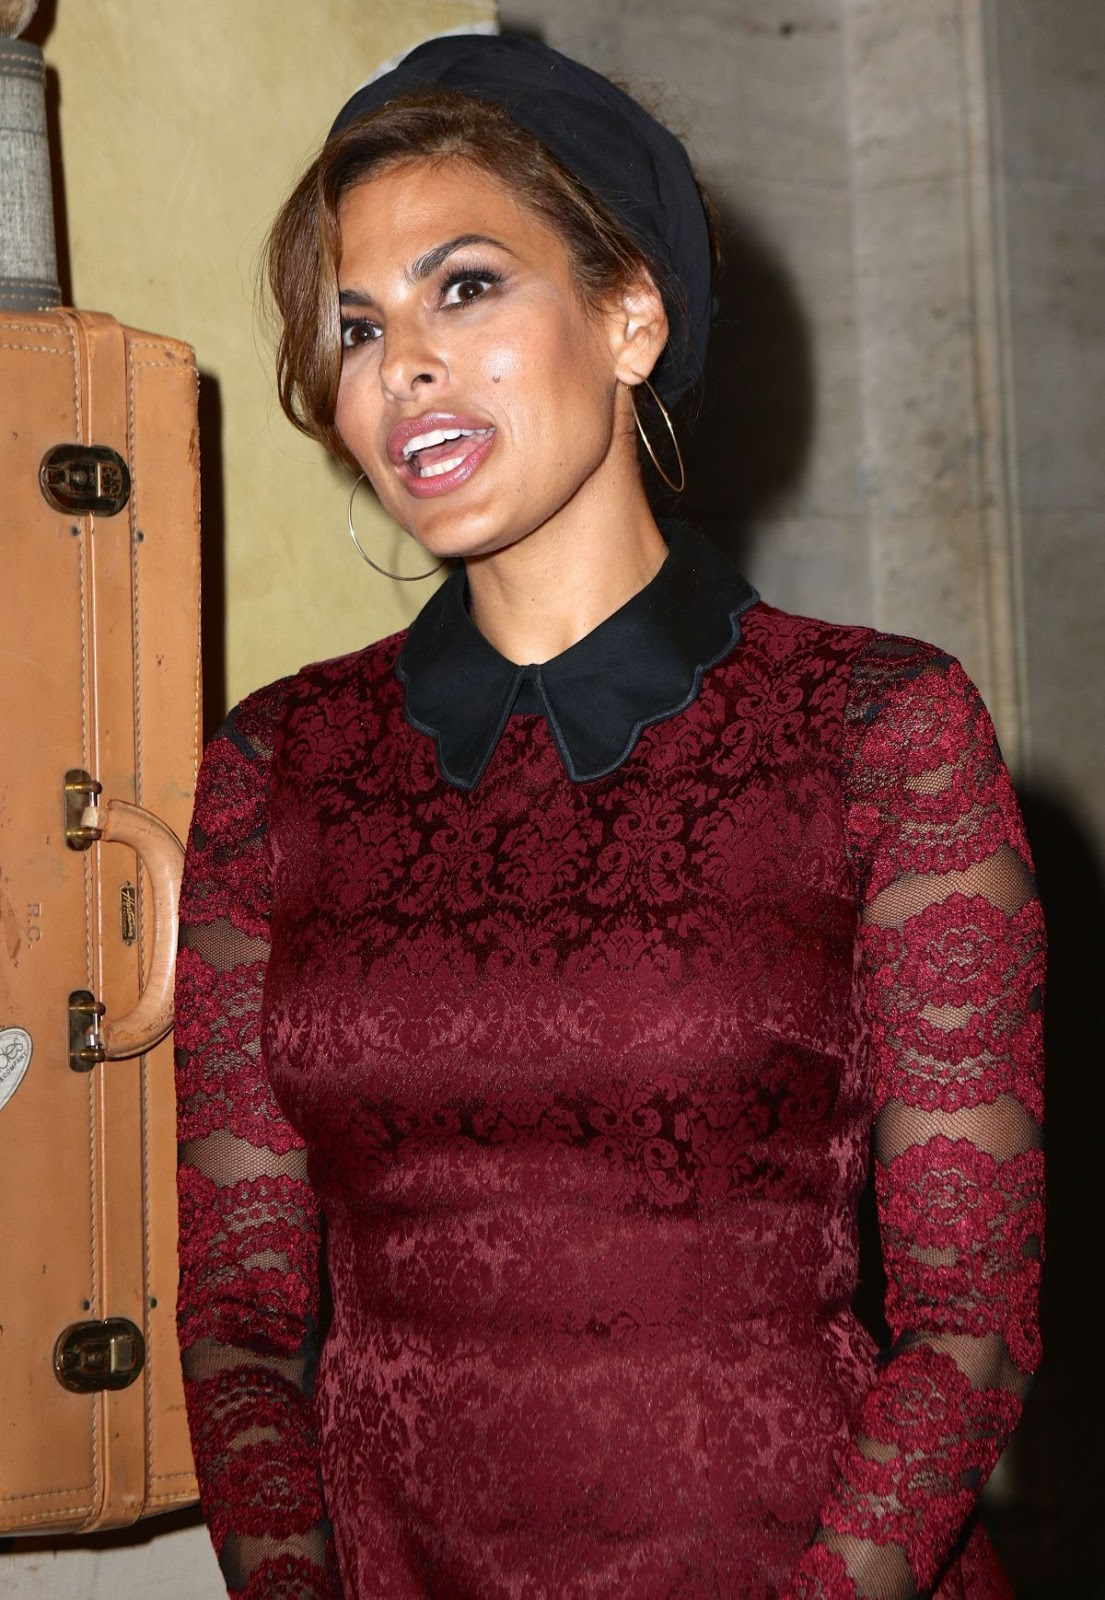 'Fast 8' actress HQ Photos of Eva Mendes At New York Company Front Row FW16 Runway Show In New York